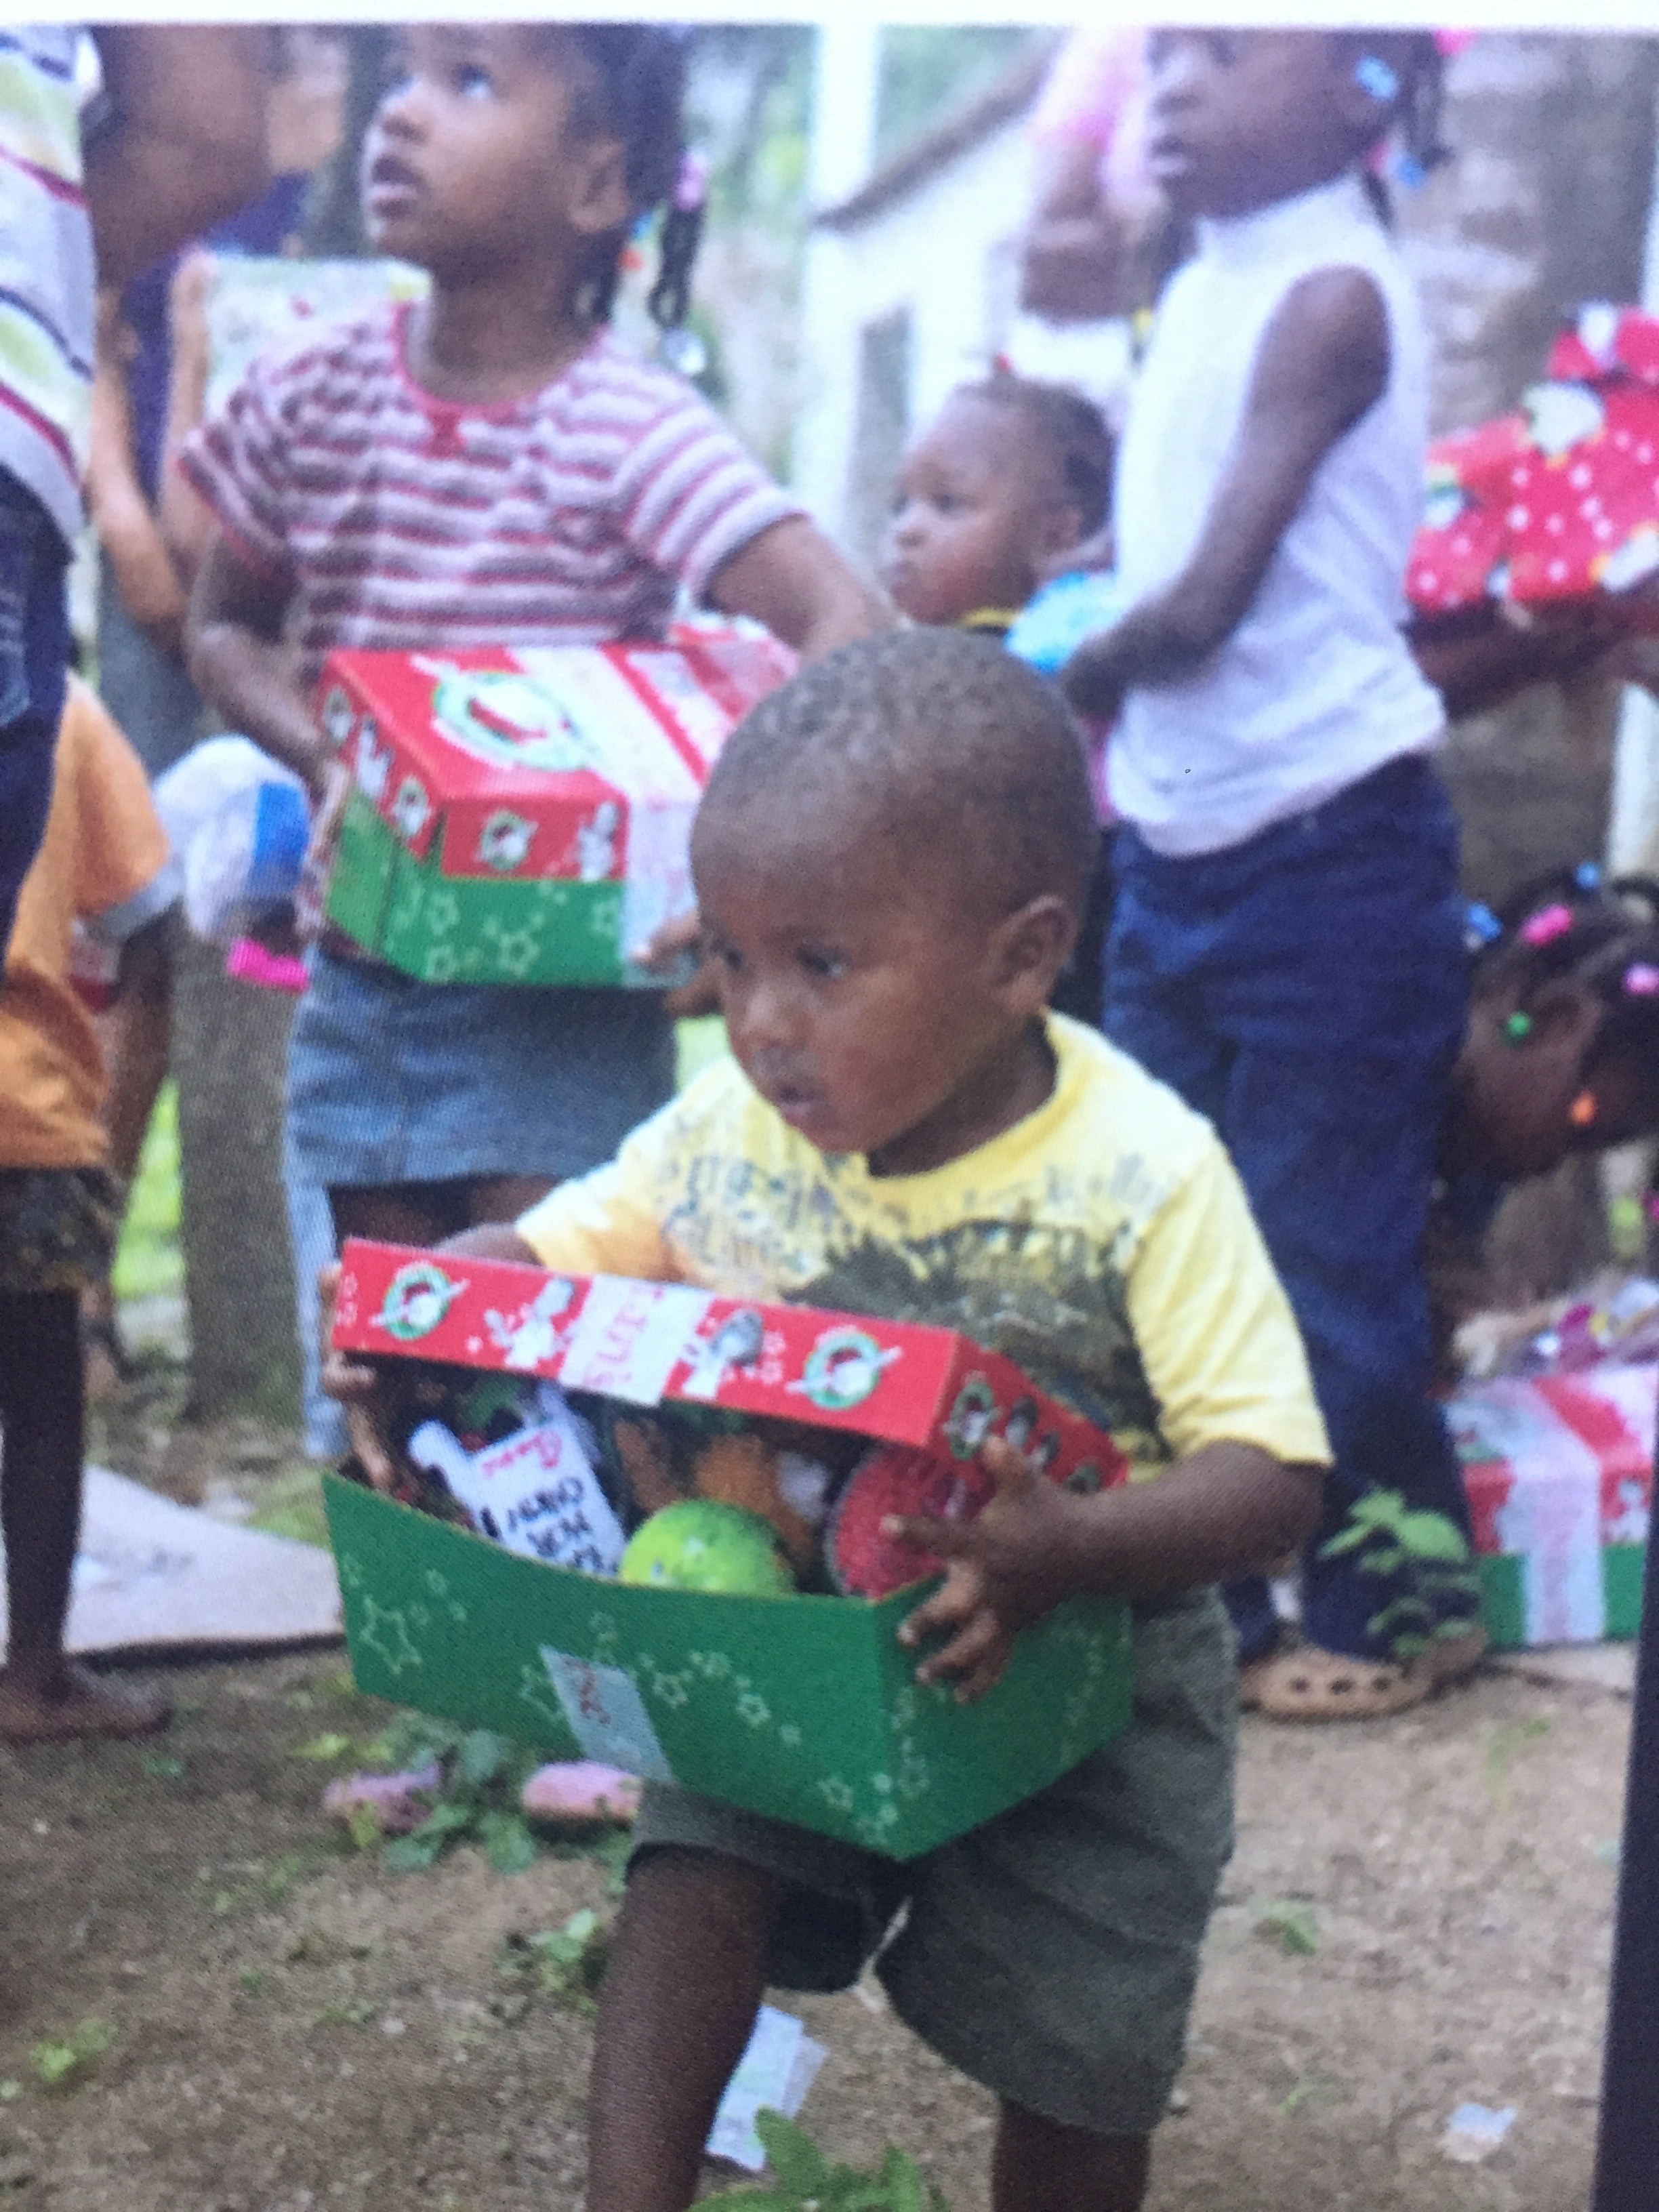 Pack A Shoebox Full Of Love Plant Seeds Of Compassion